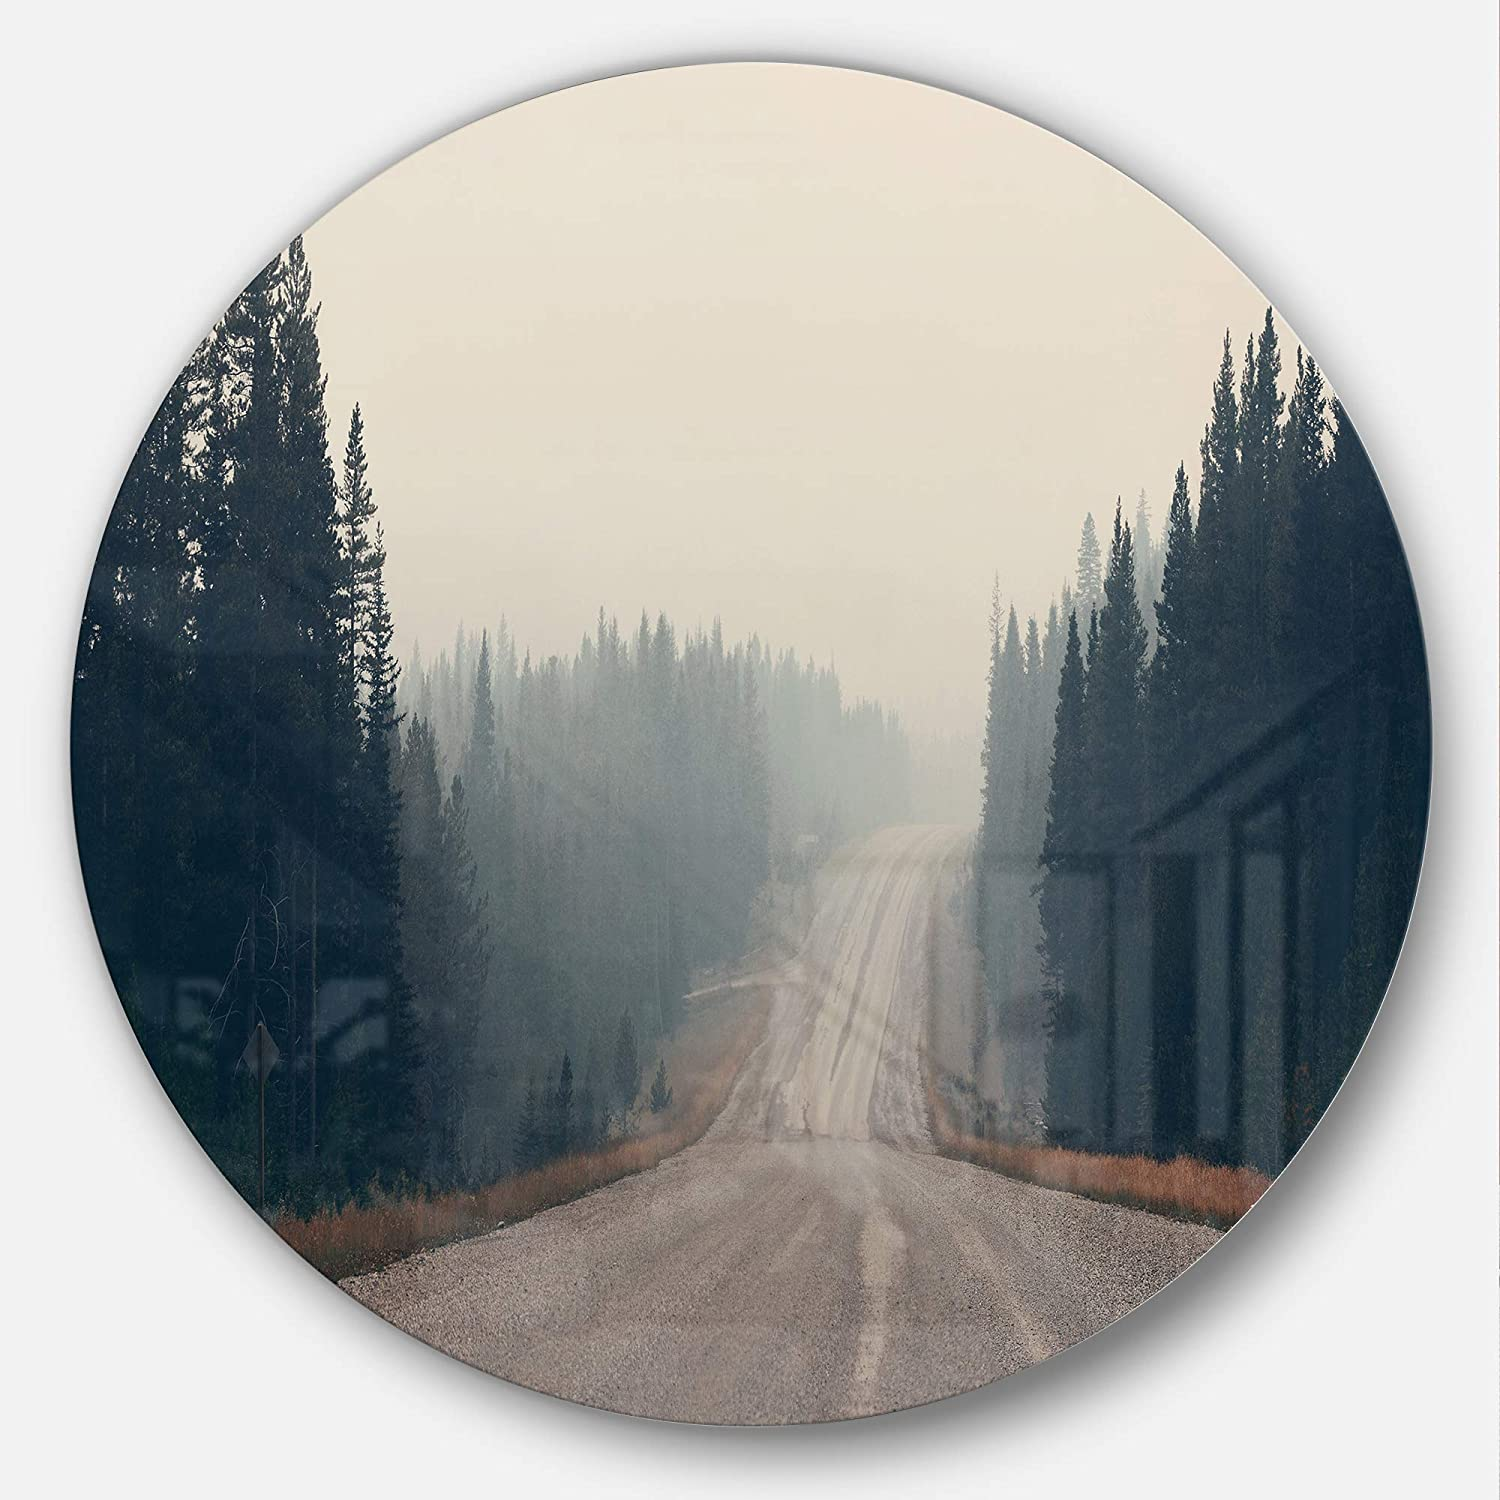 Designart Foggy Road In Forest In Banff Park Modern Seascape Large Metal Wall Art Disc Of 23 23 H X 23 W X 1 D 1p Home Kitchen